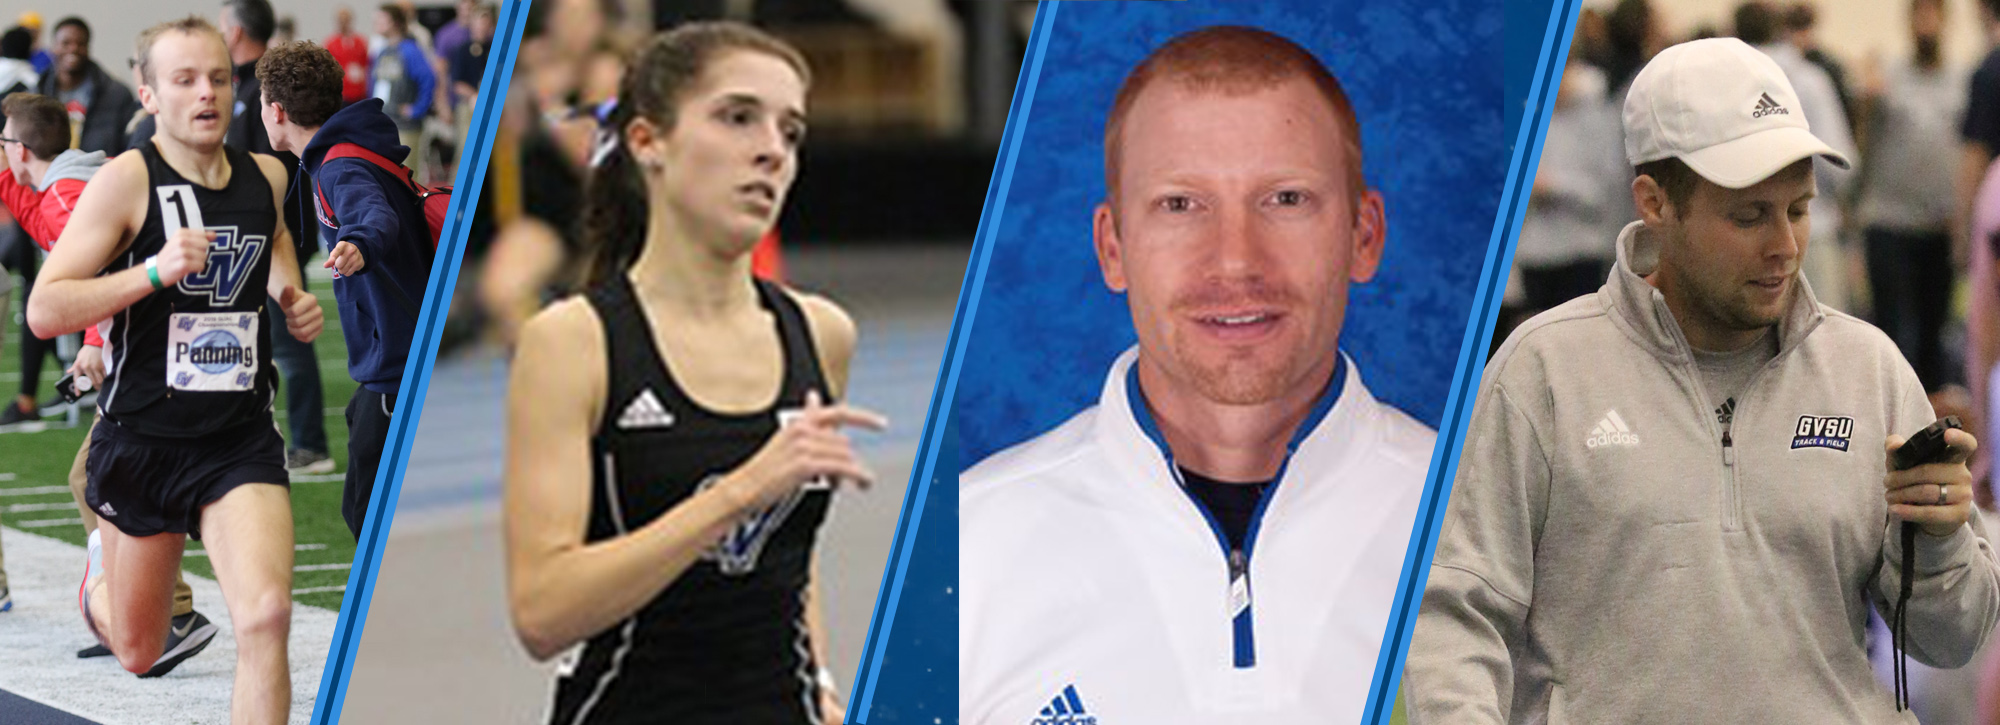 GVSU's Panning, Ludge, Baltes and Watson receive special USTFCCCA honors